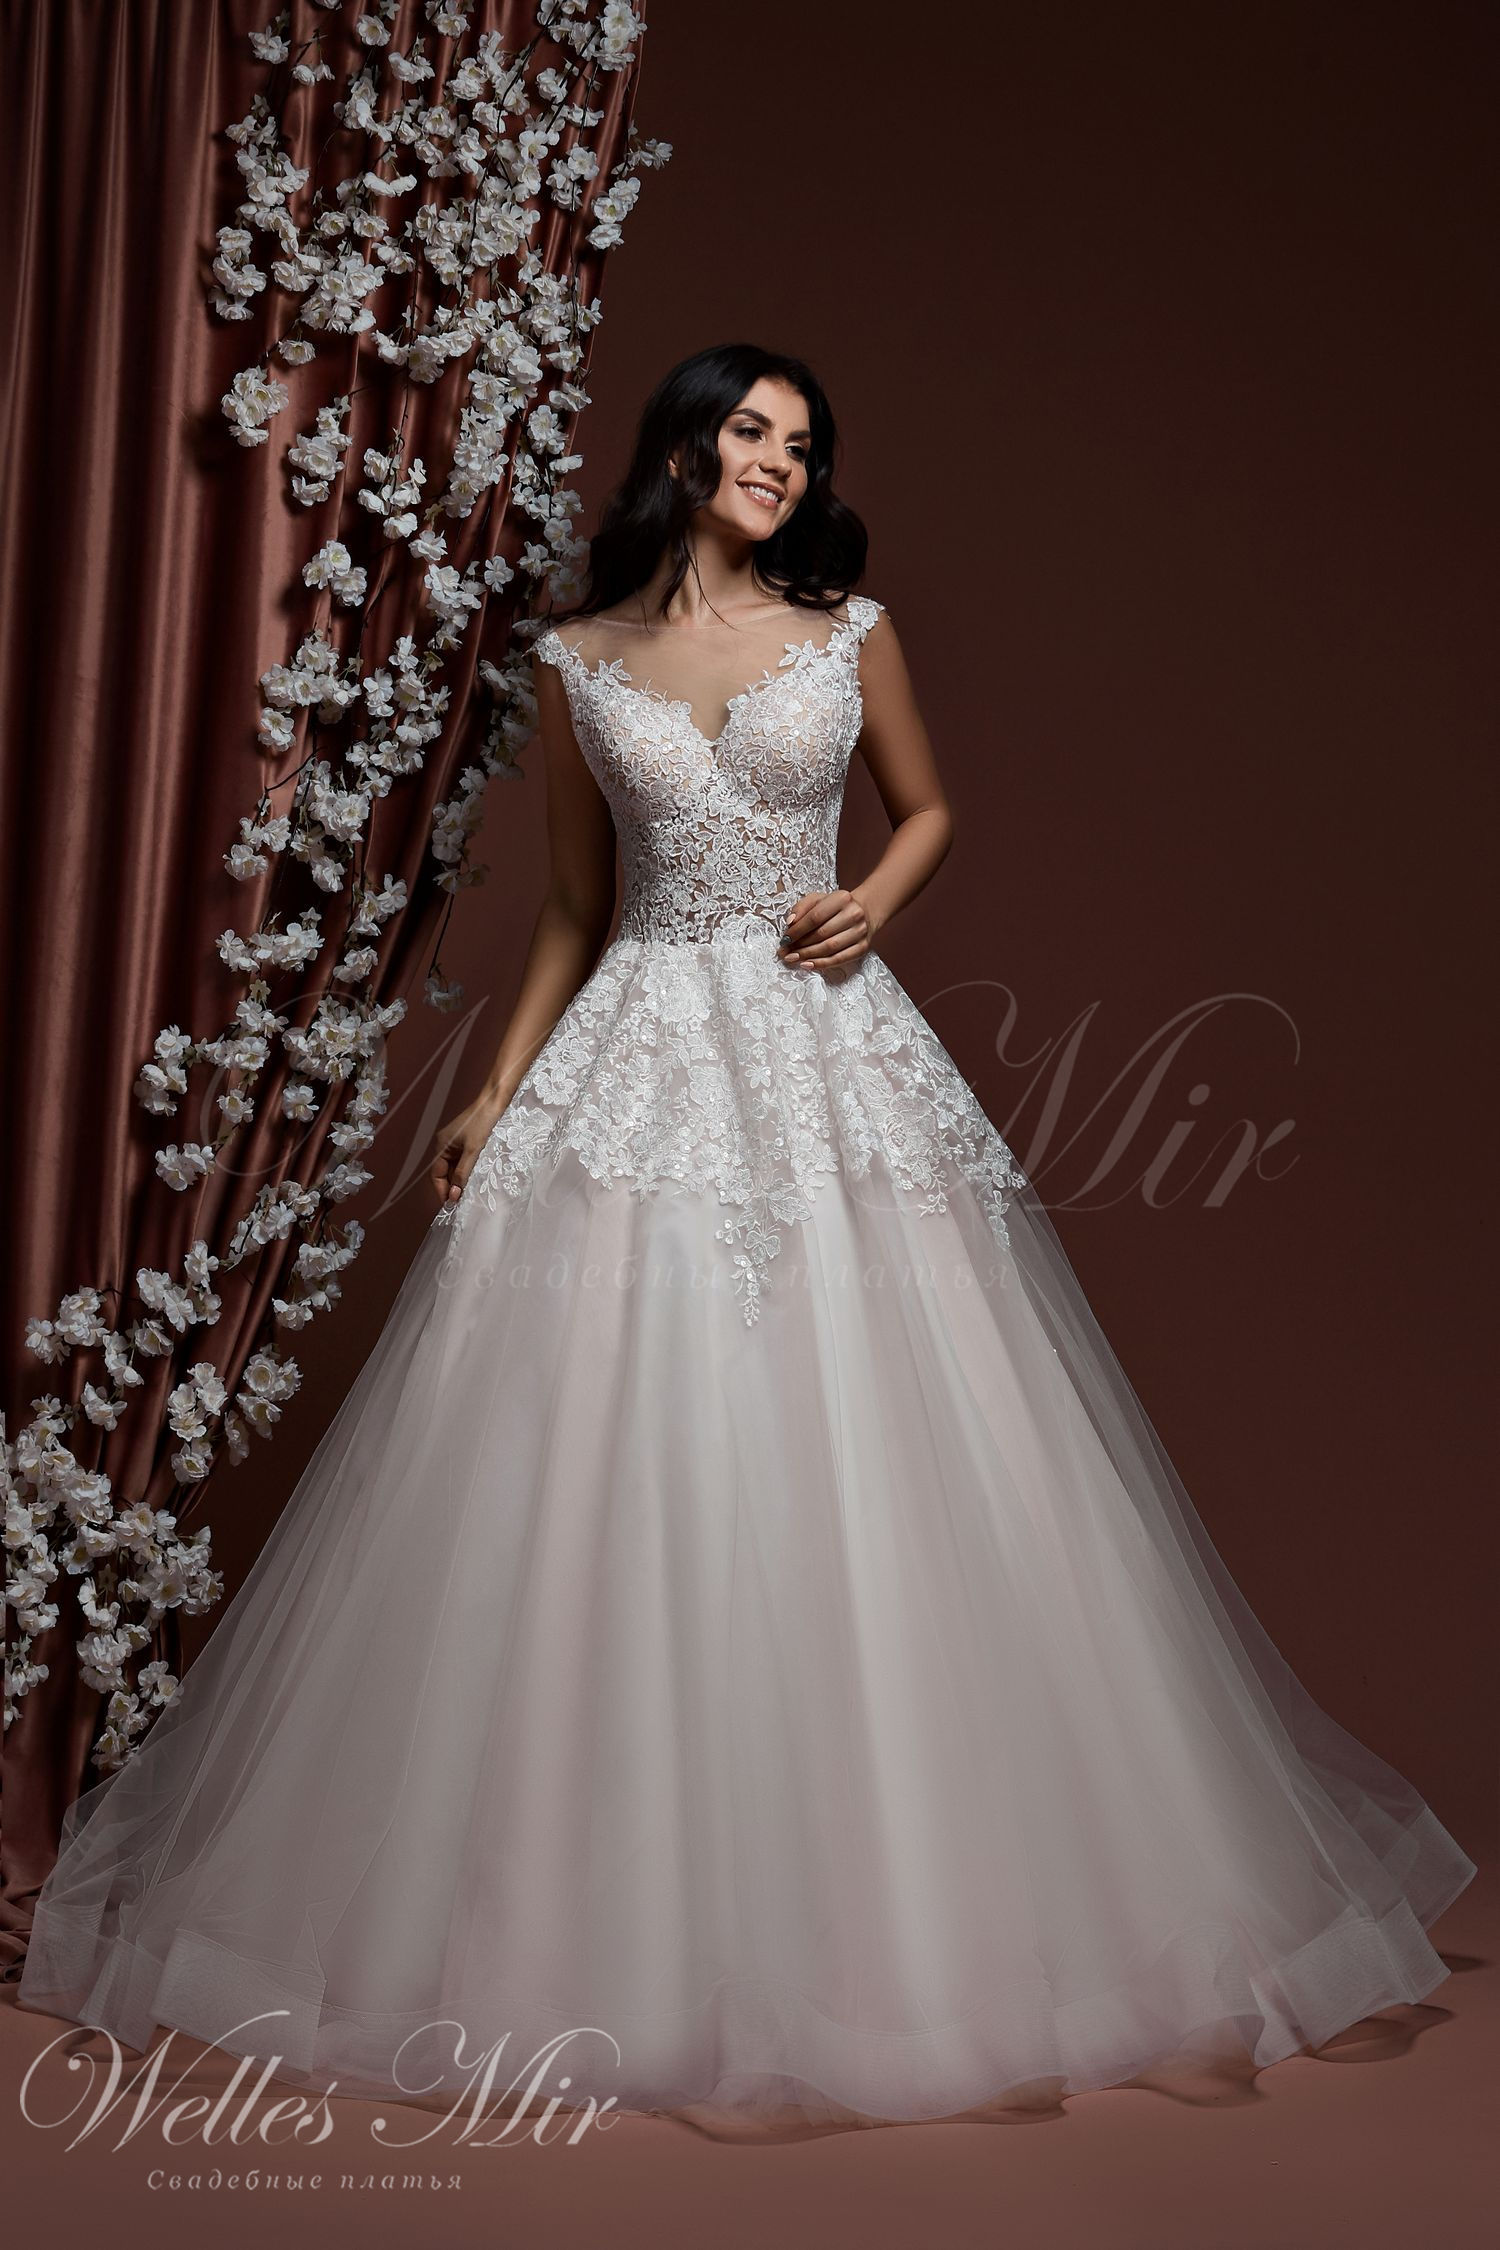 Wedding dresses 520